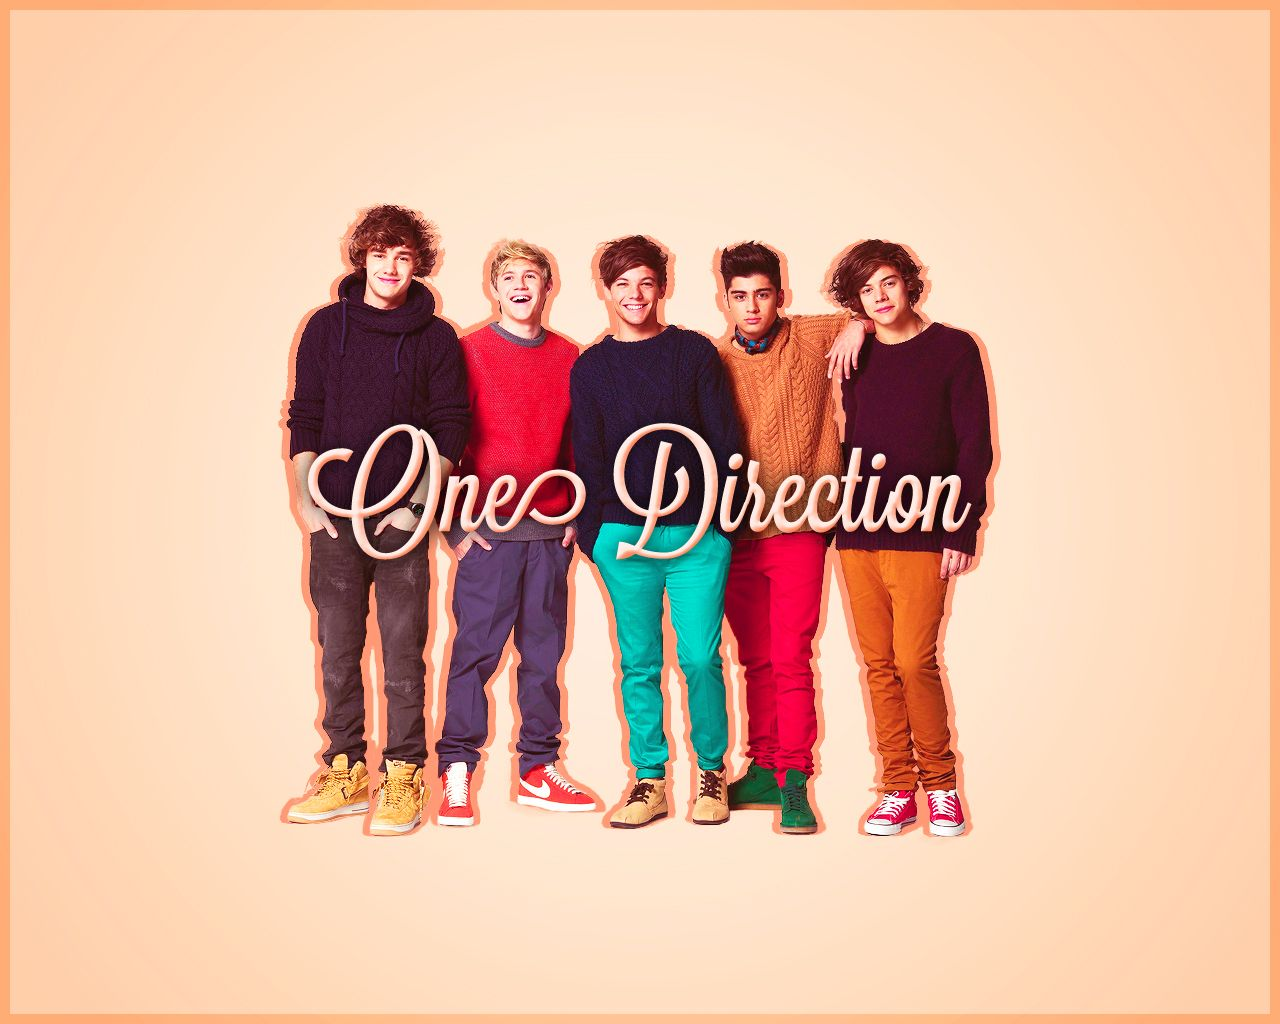 1d one direction 31017557 fanclubs